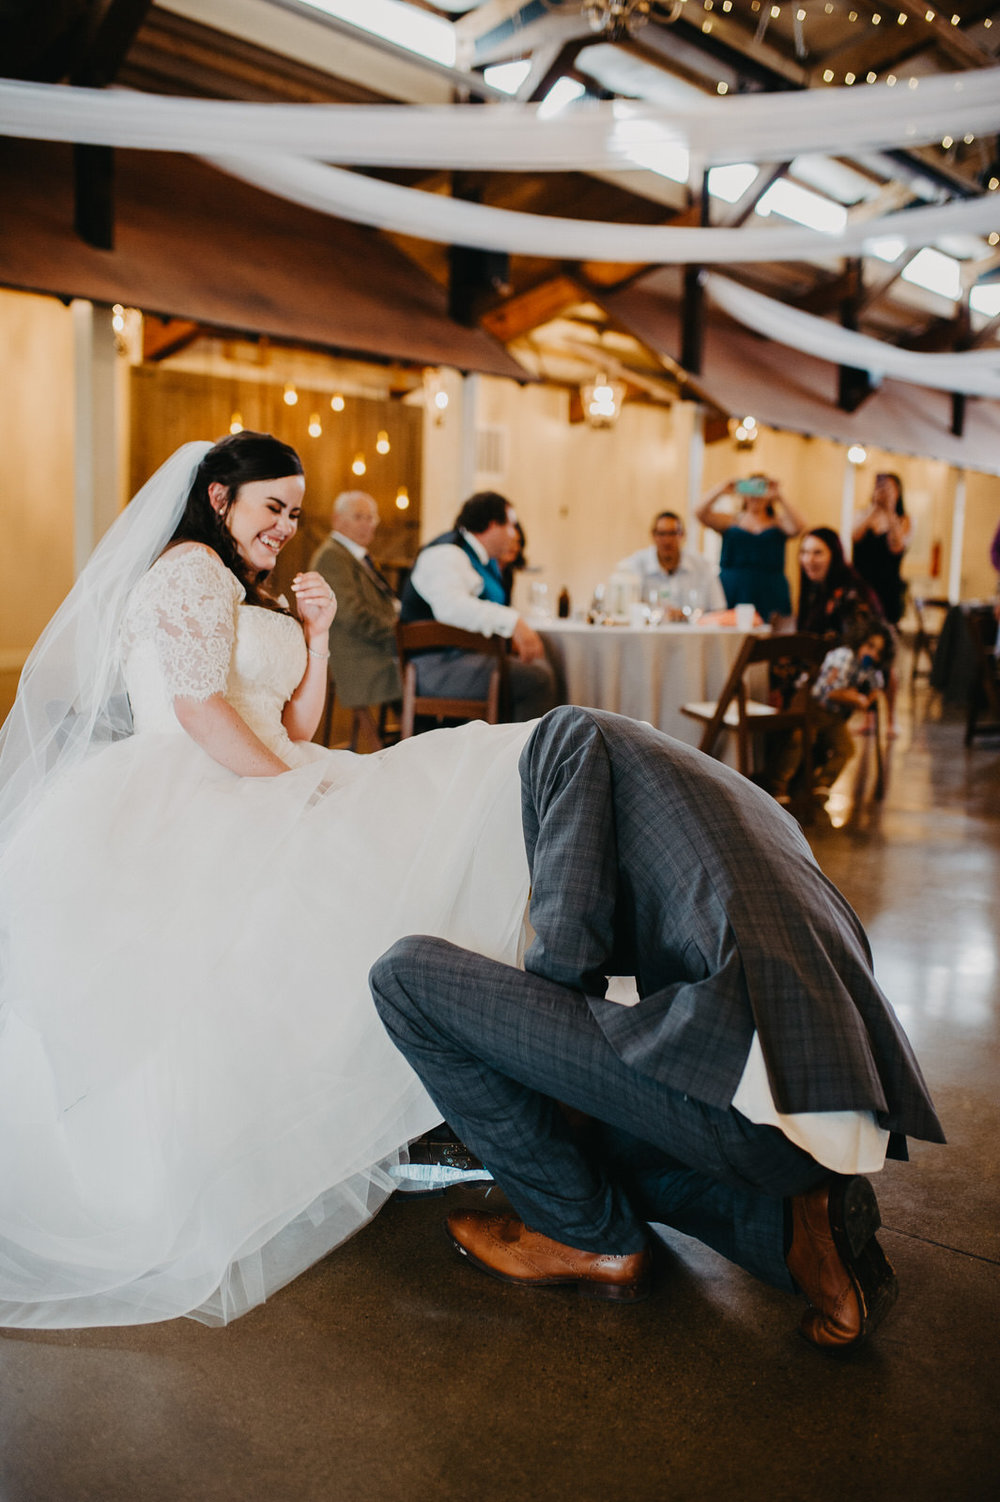 Lisa&Logan'sWeddingBlog69.jpg